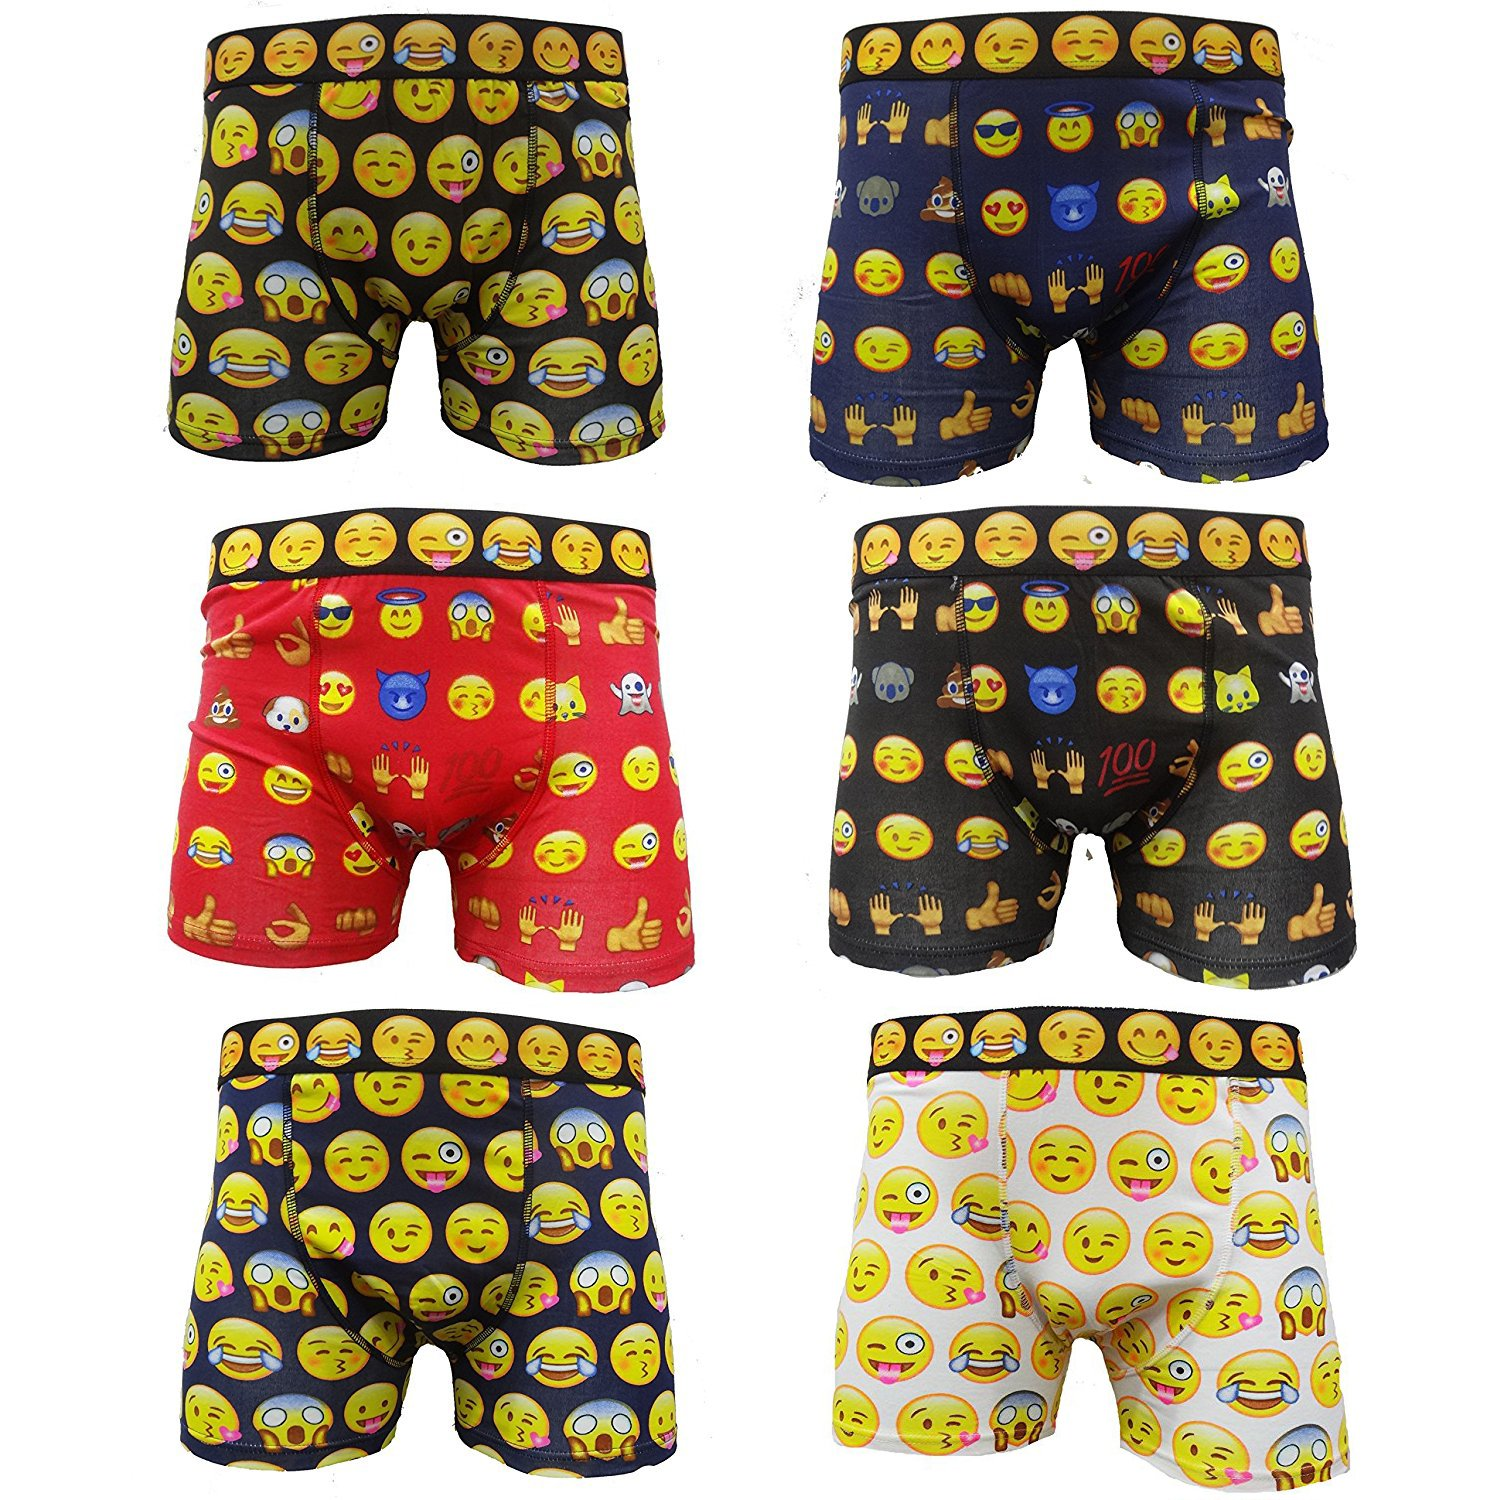 3 PAIRS MENS BOXER SHORTS COTTON BLACK WHITE RED BLACK STRIPED EMOJI  DESIGN new